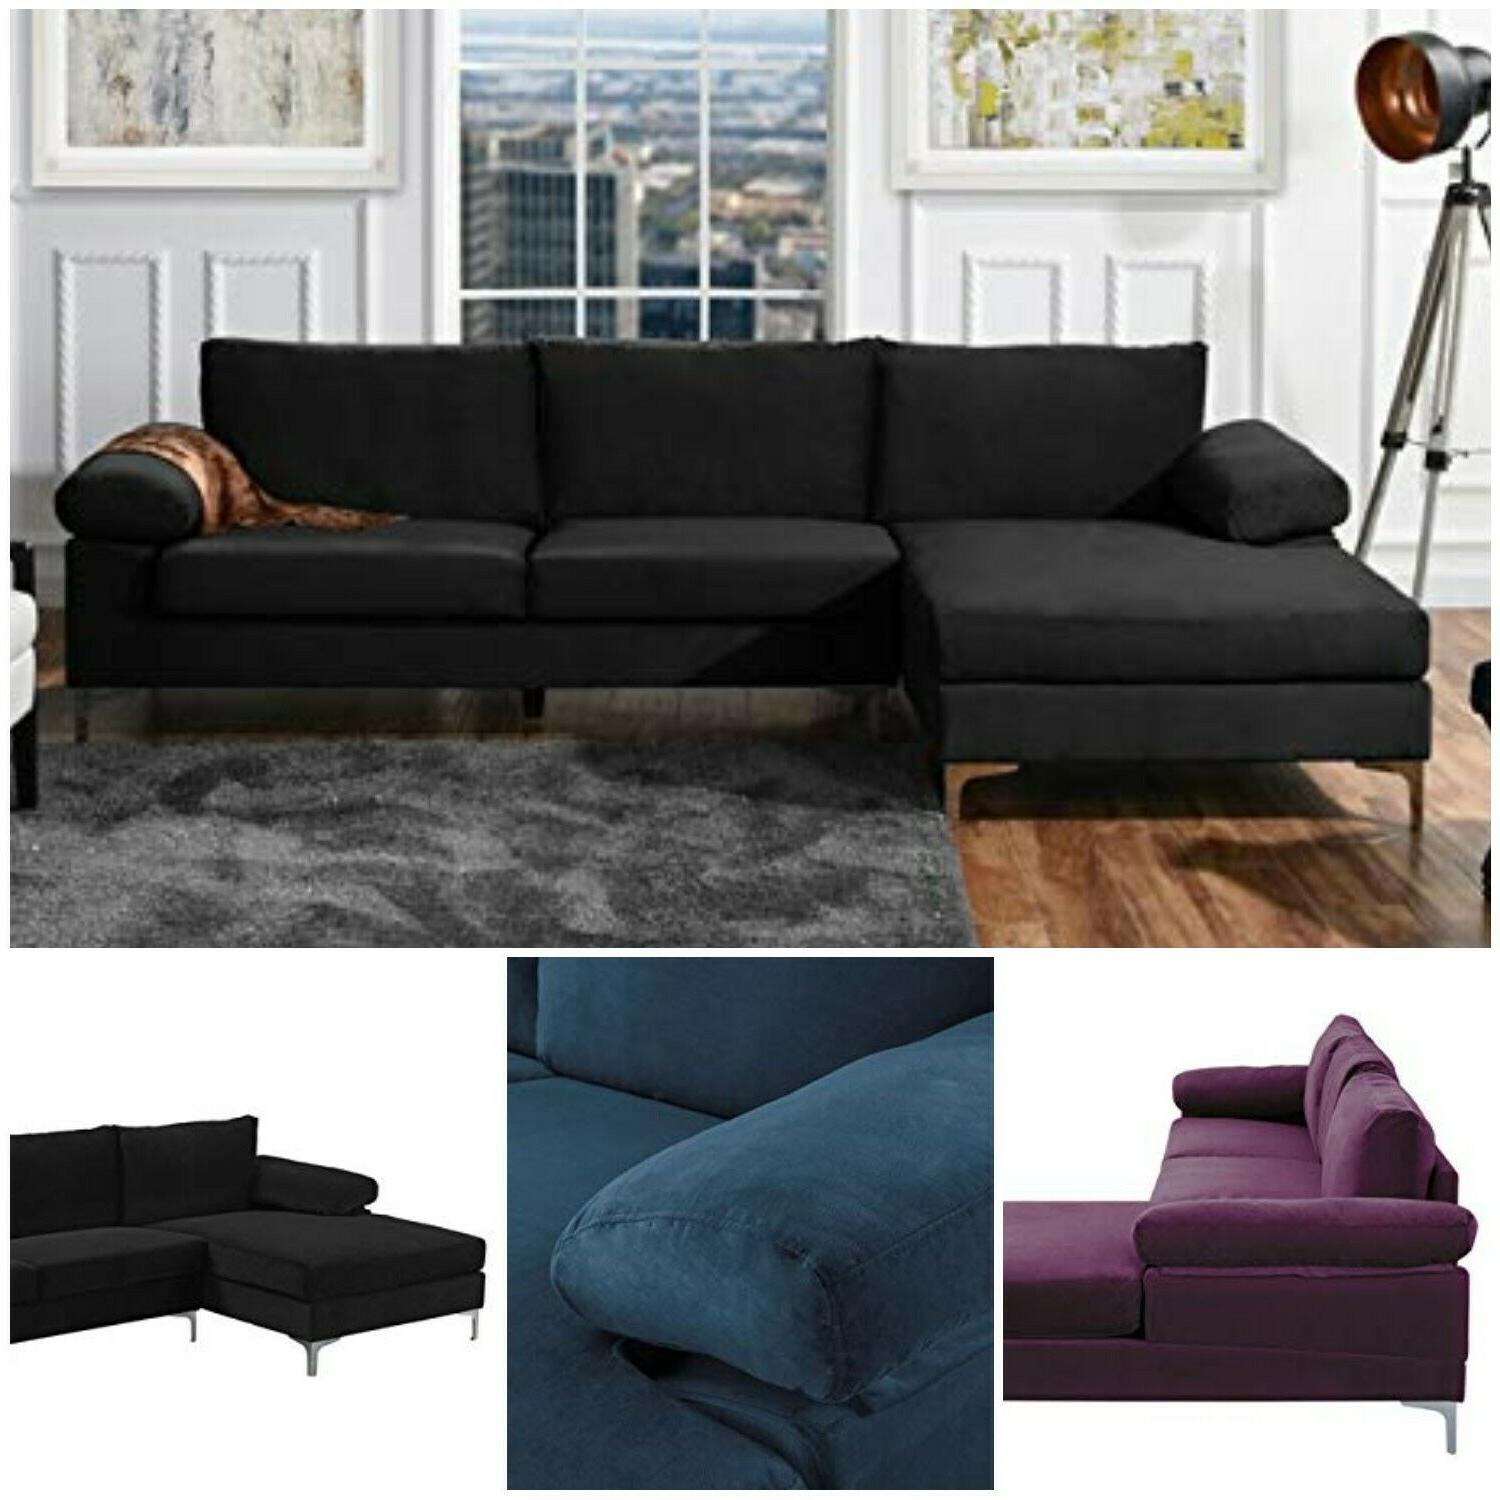 Large Sectional Sofa Velvet Fabric Upholstery L Shape Extra